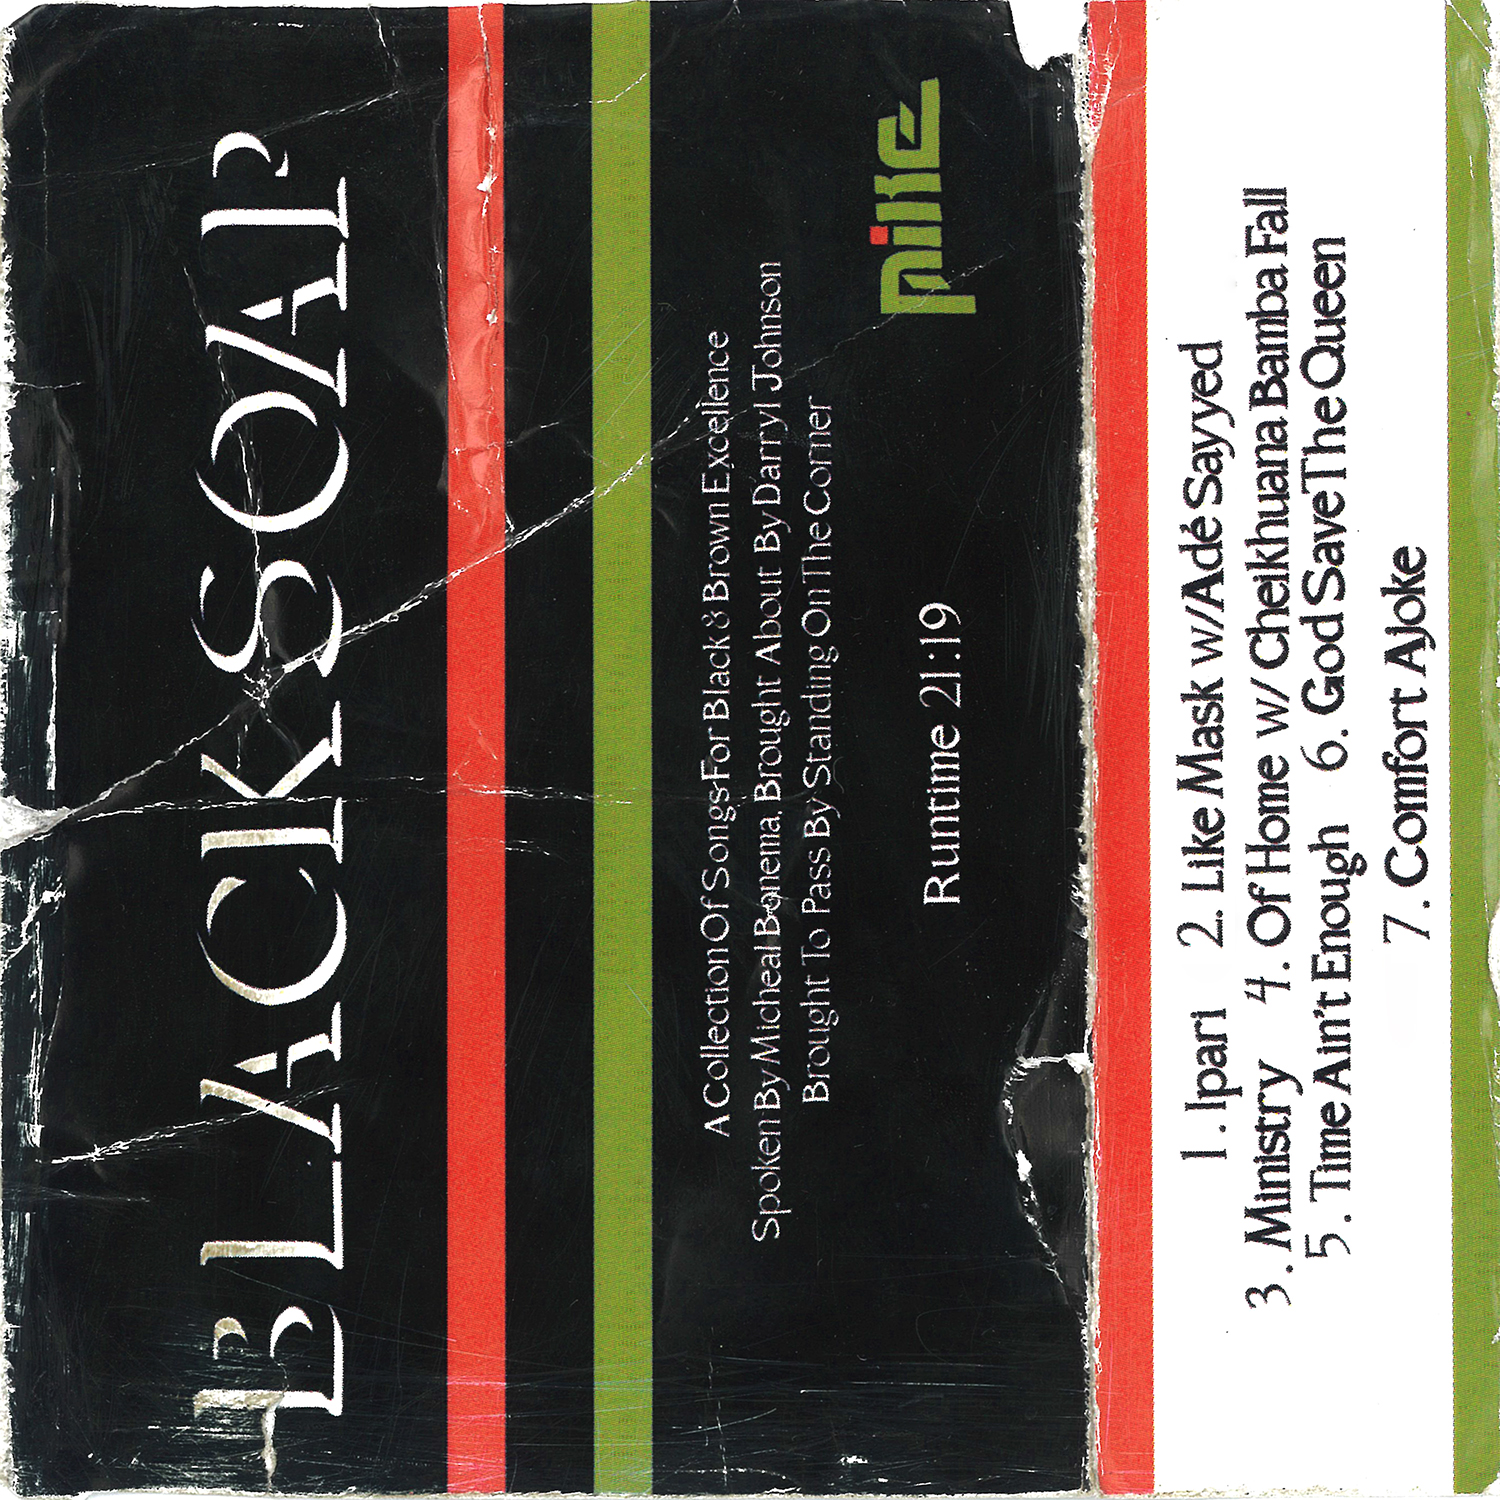 MIKE_BLACK_SOAP_DIGI 1500x1500